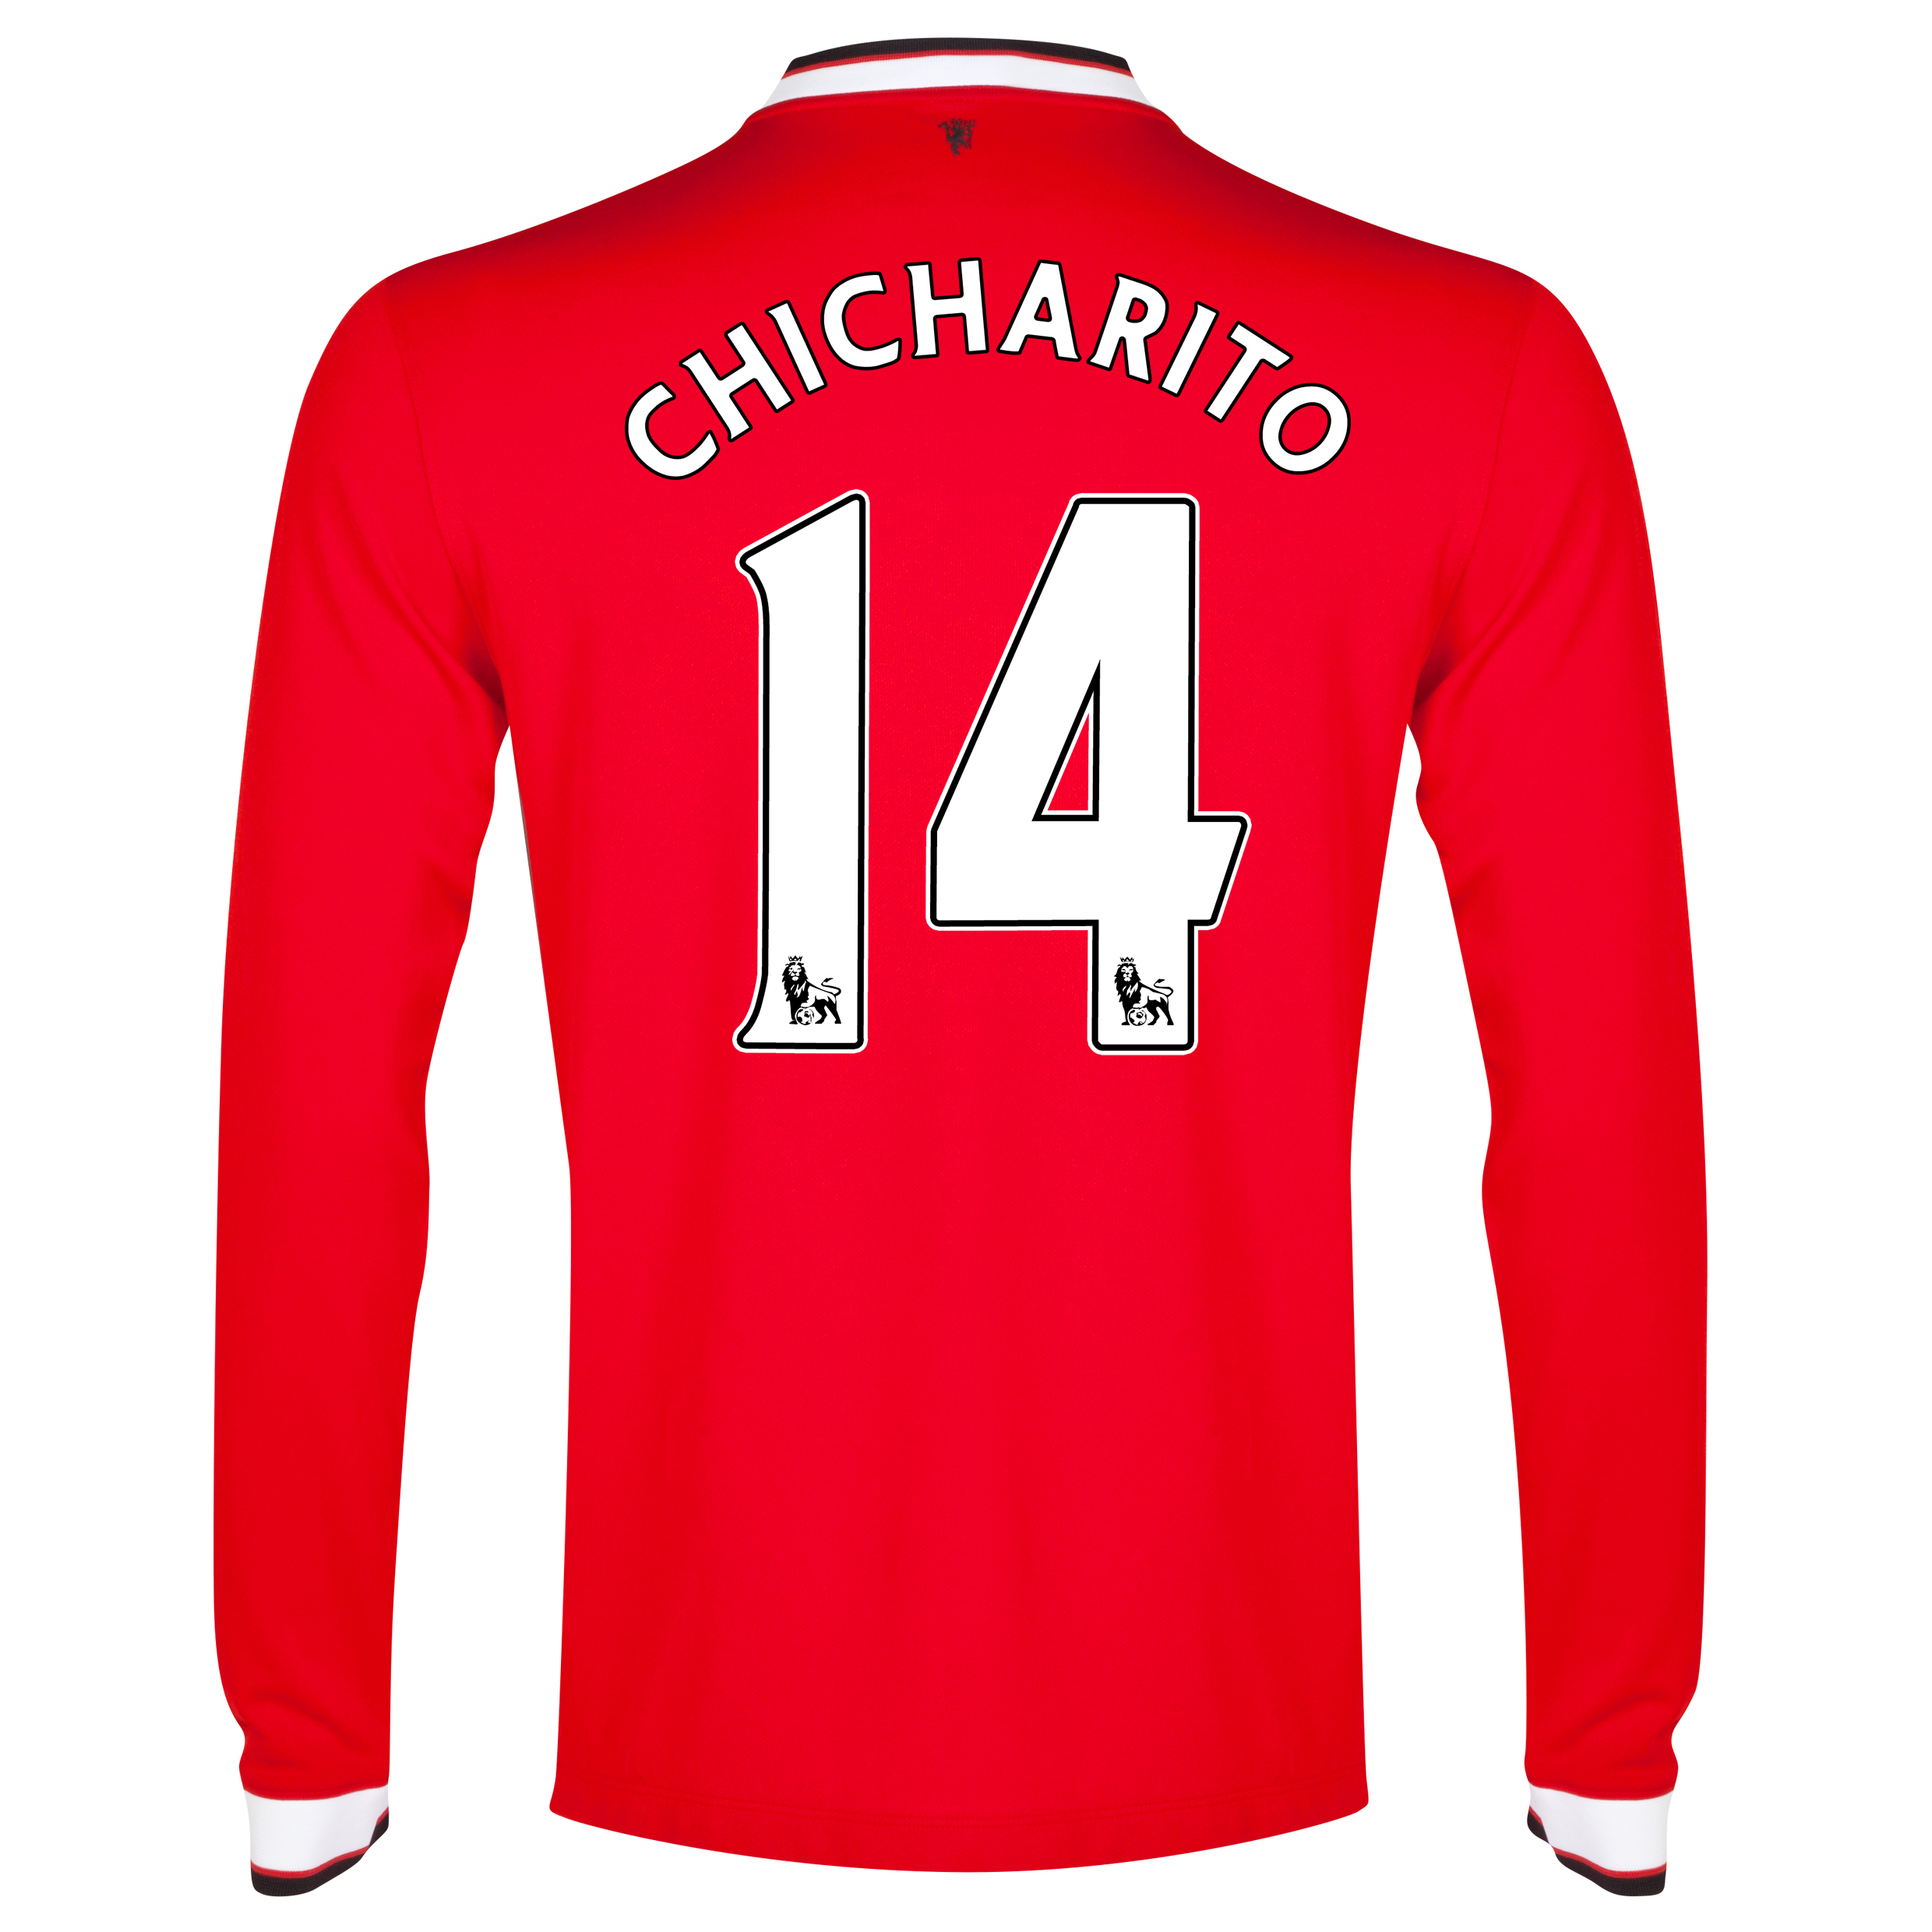 Manchester United Home Shirt 2014/15 - Long Sleeve Red with Chicharito 14 printing